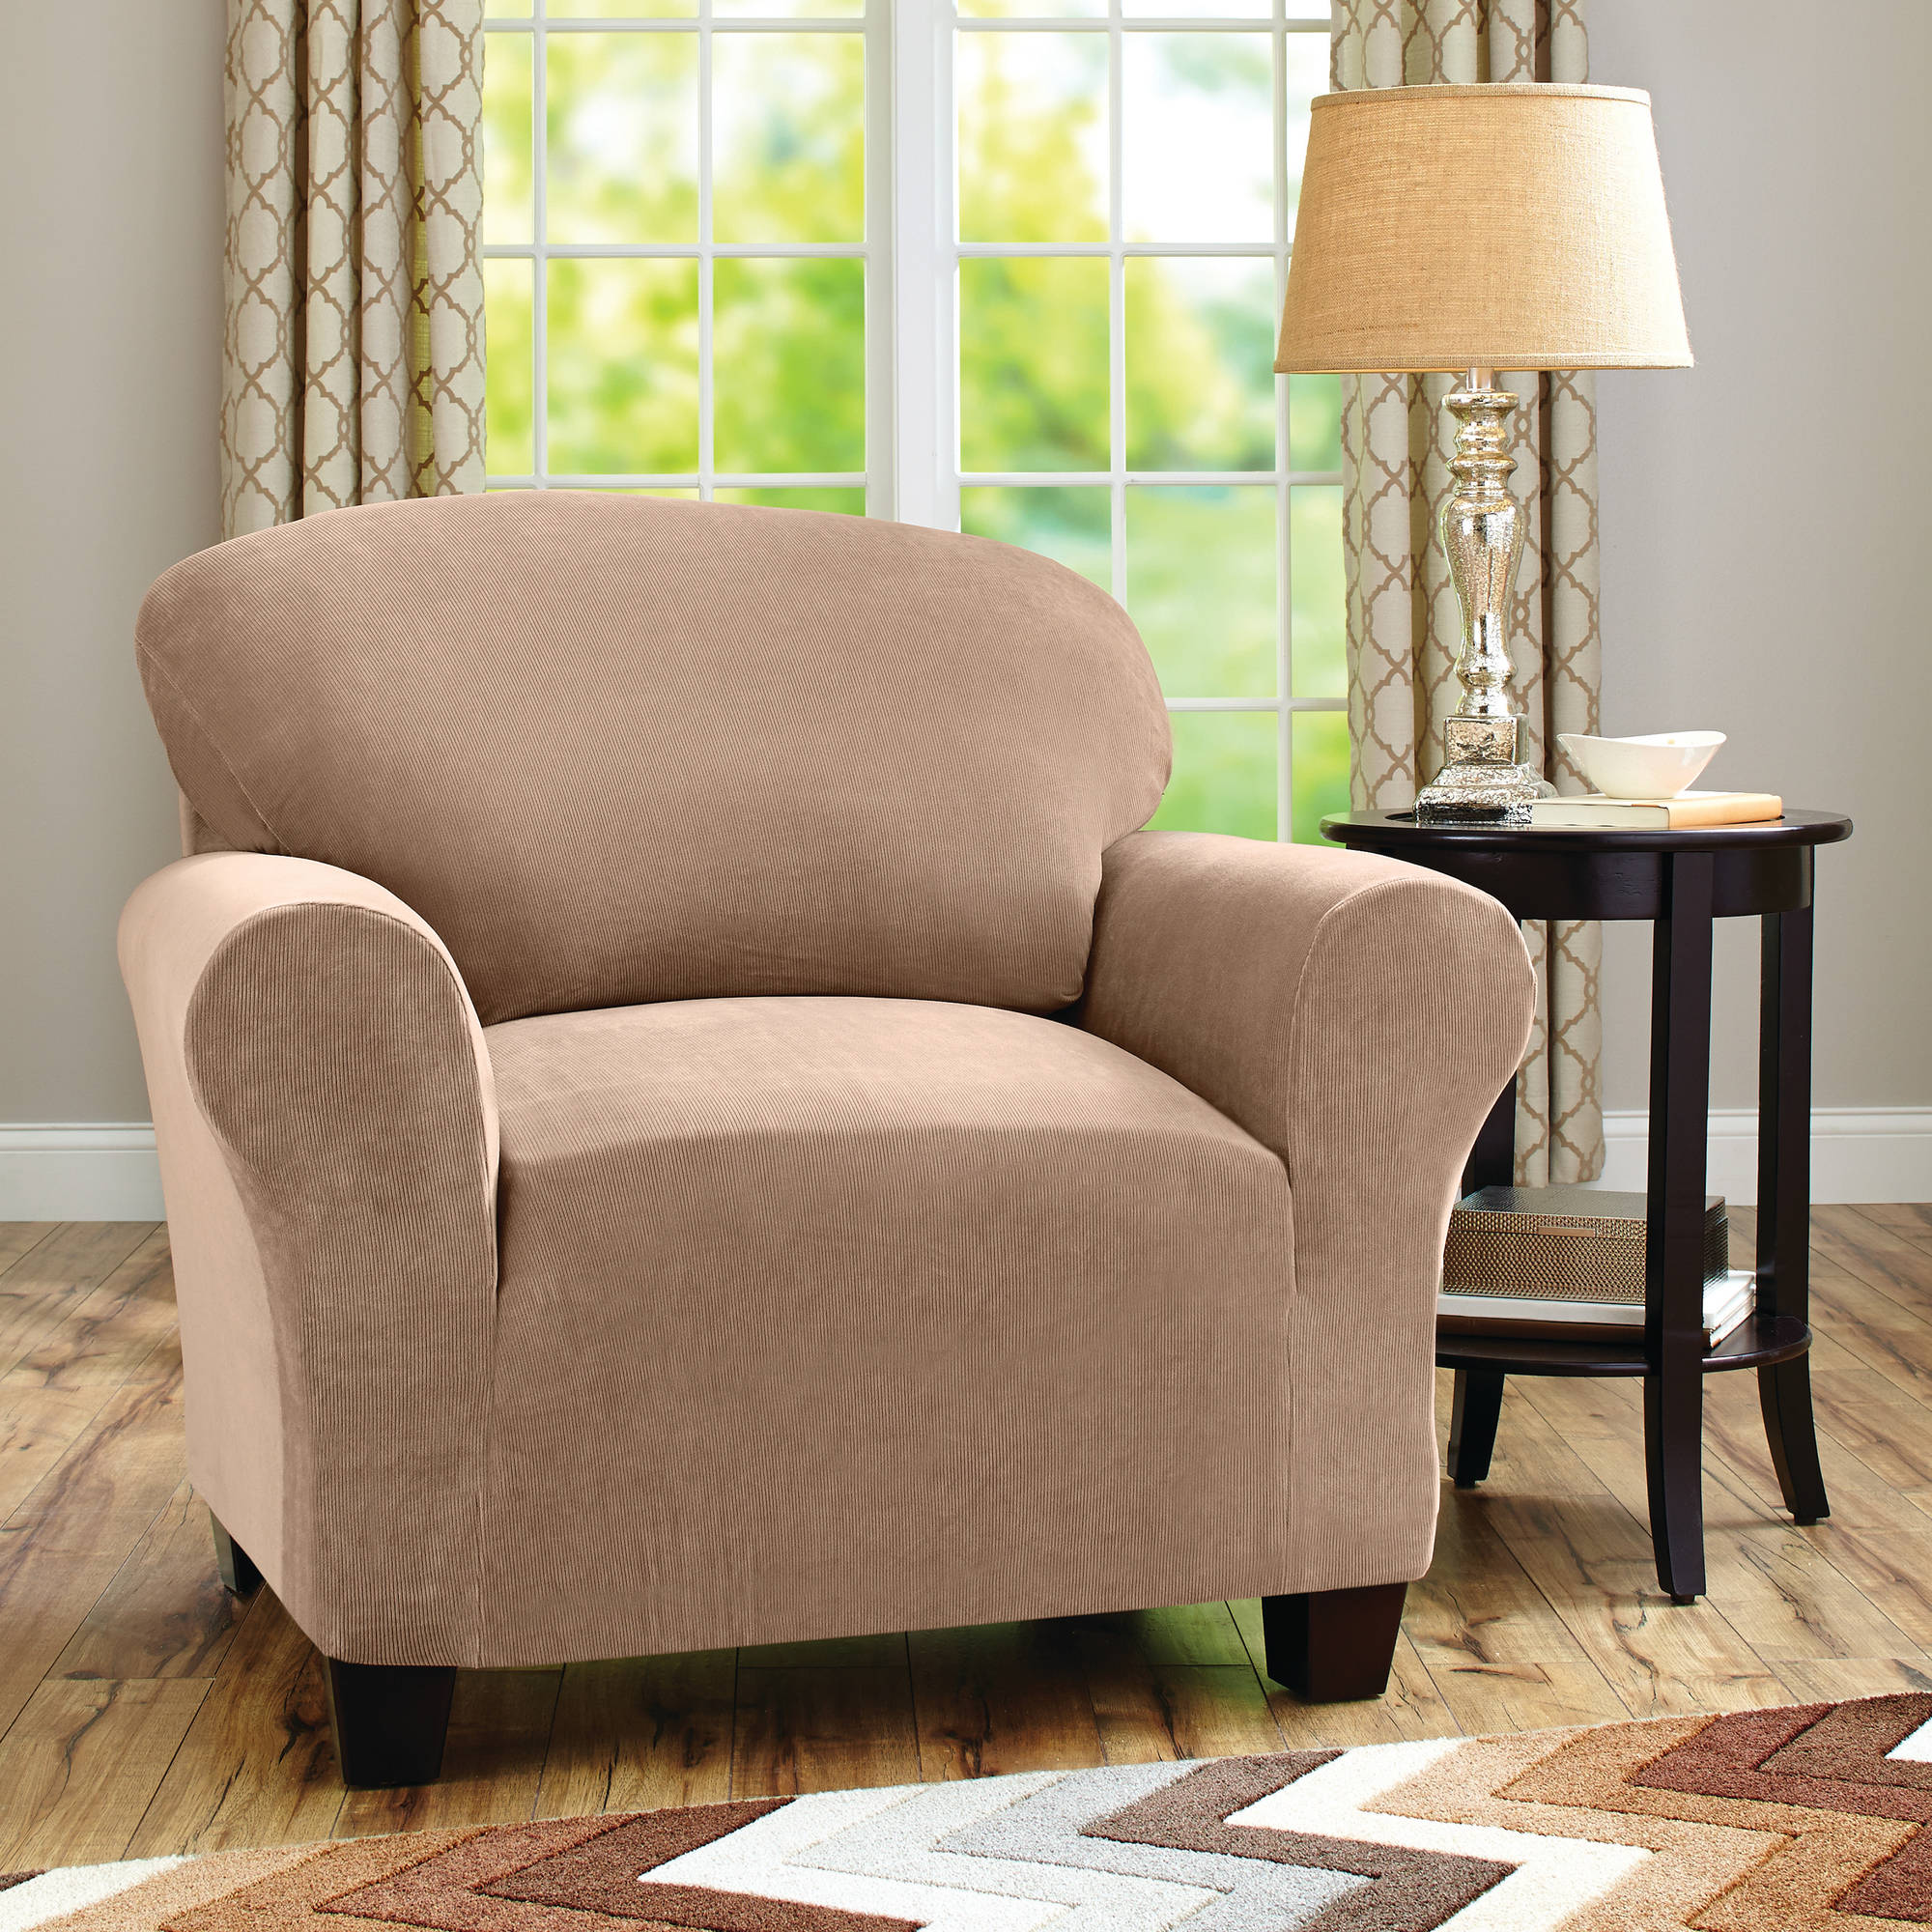 Better Homes and Gardens One-Piece Stretch Fine Corduroy Chair Slipcover : sectional slipcovers walmart - Sectionals, Sofas & Couches